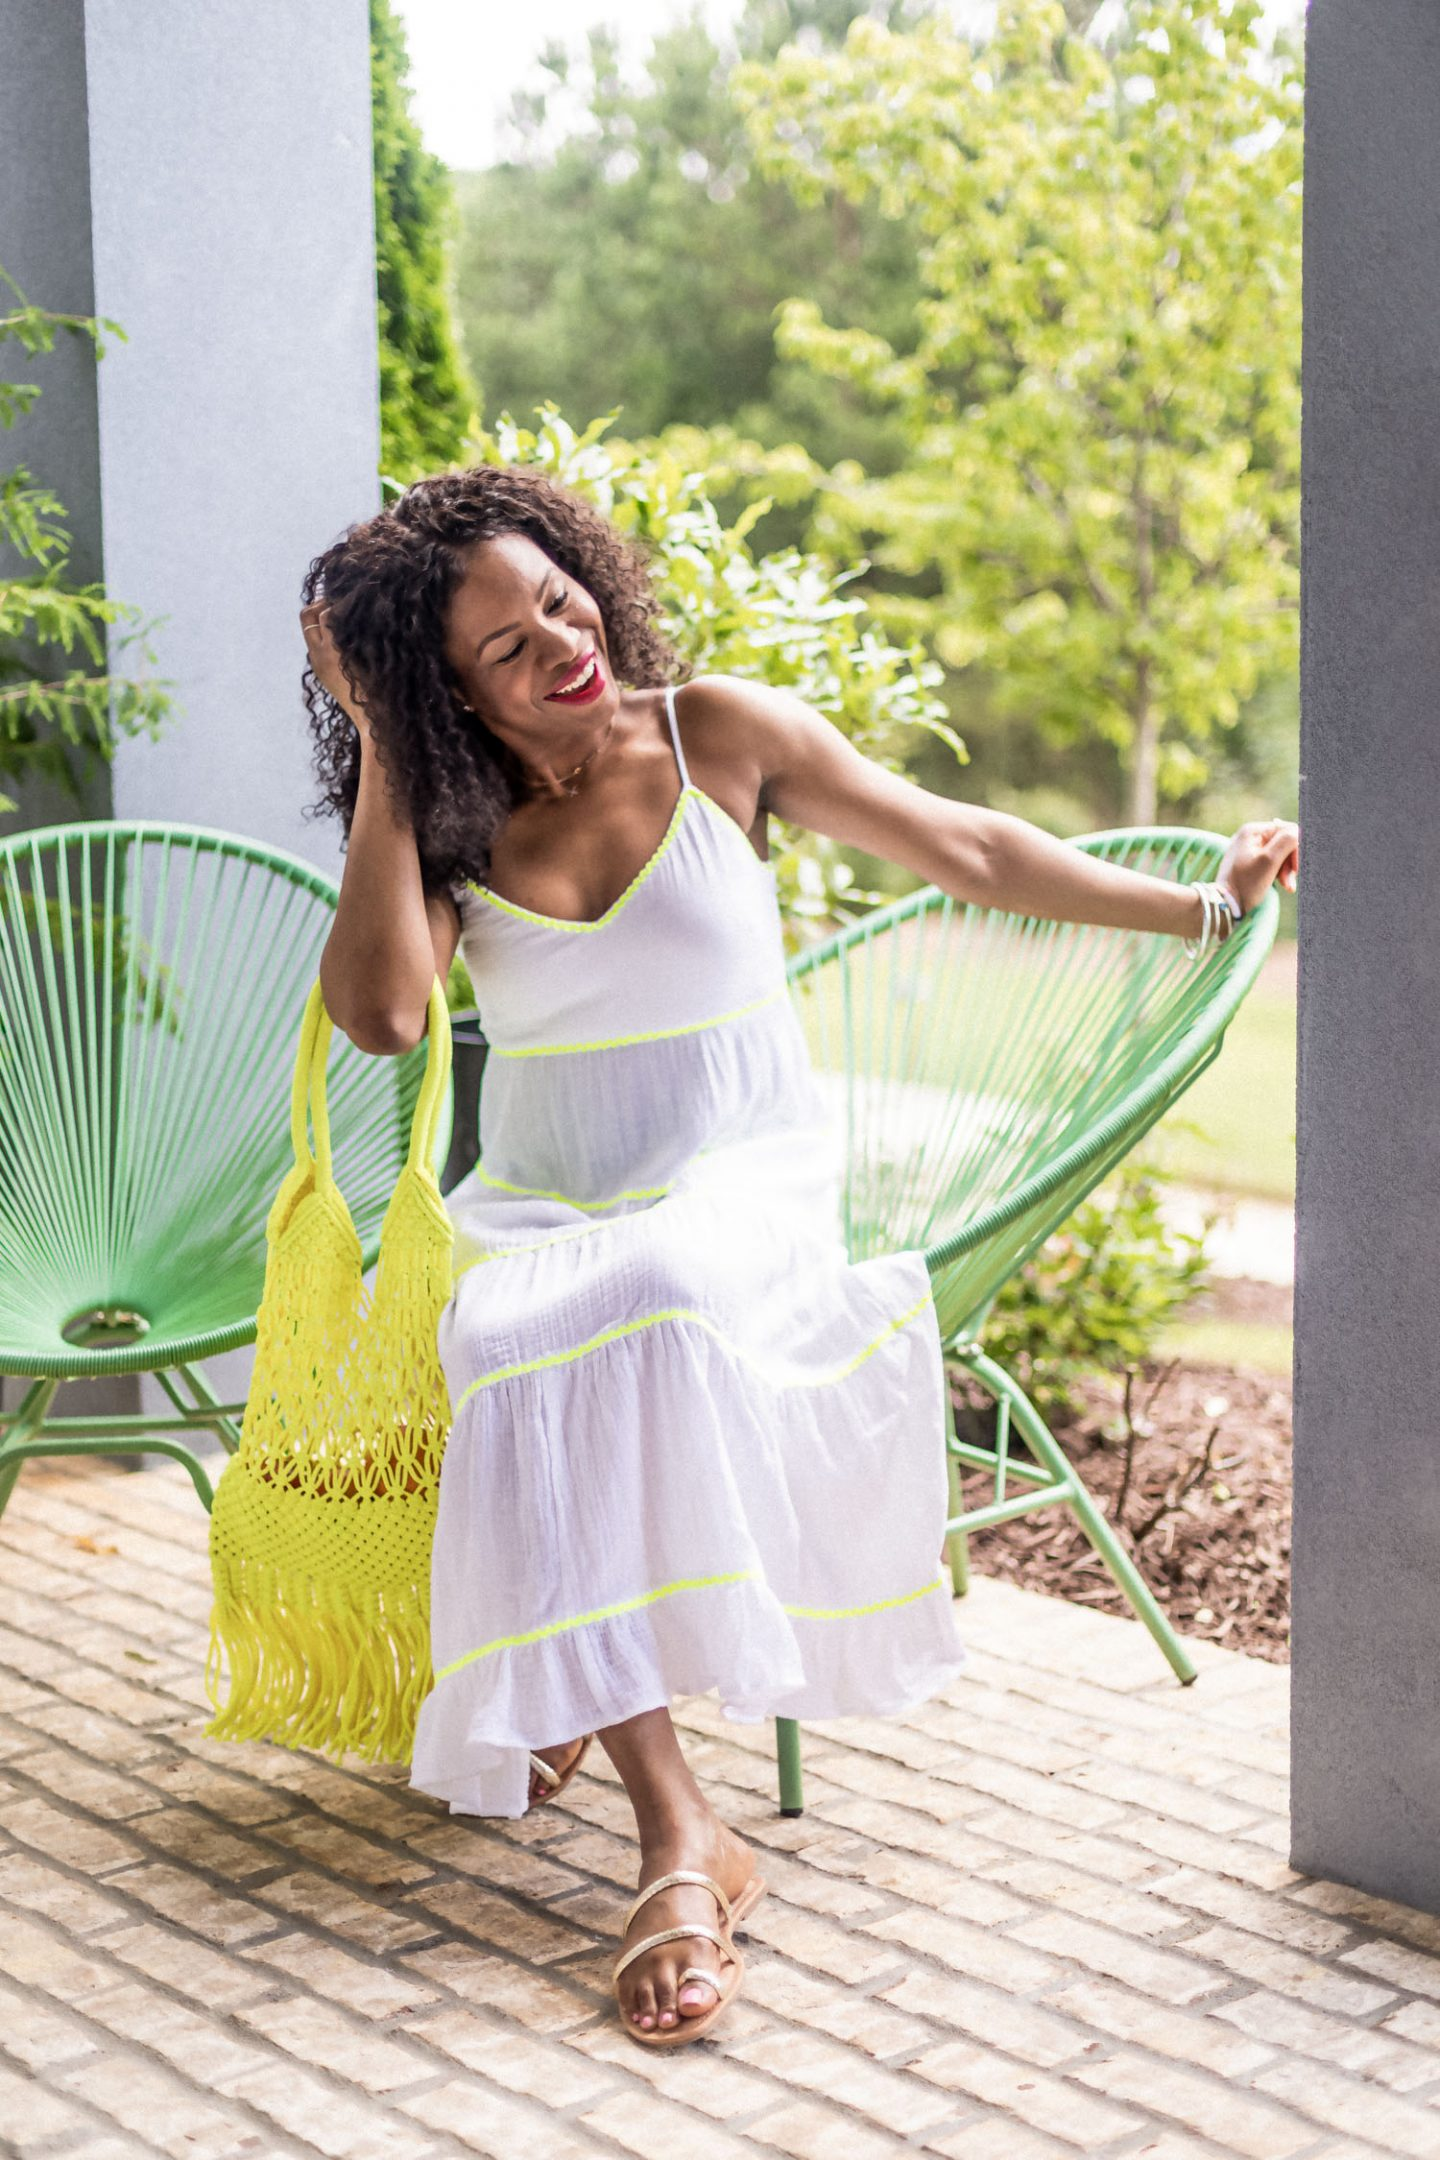 atlanta fashion blogger wearing scoop by walmart white midi dress with yellow bag, how to style a white dress for summer, affordable white dresses, yellow bag, what to wear for summer, warm weather outfits, affordable outfits under $50